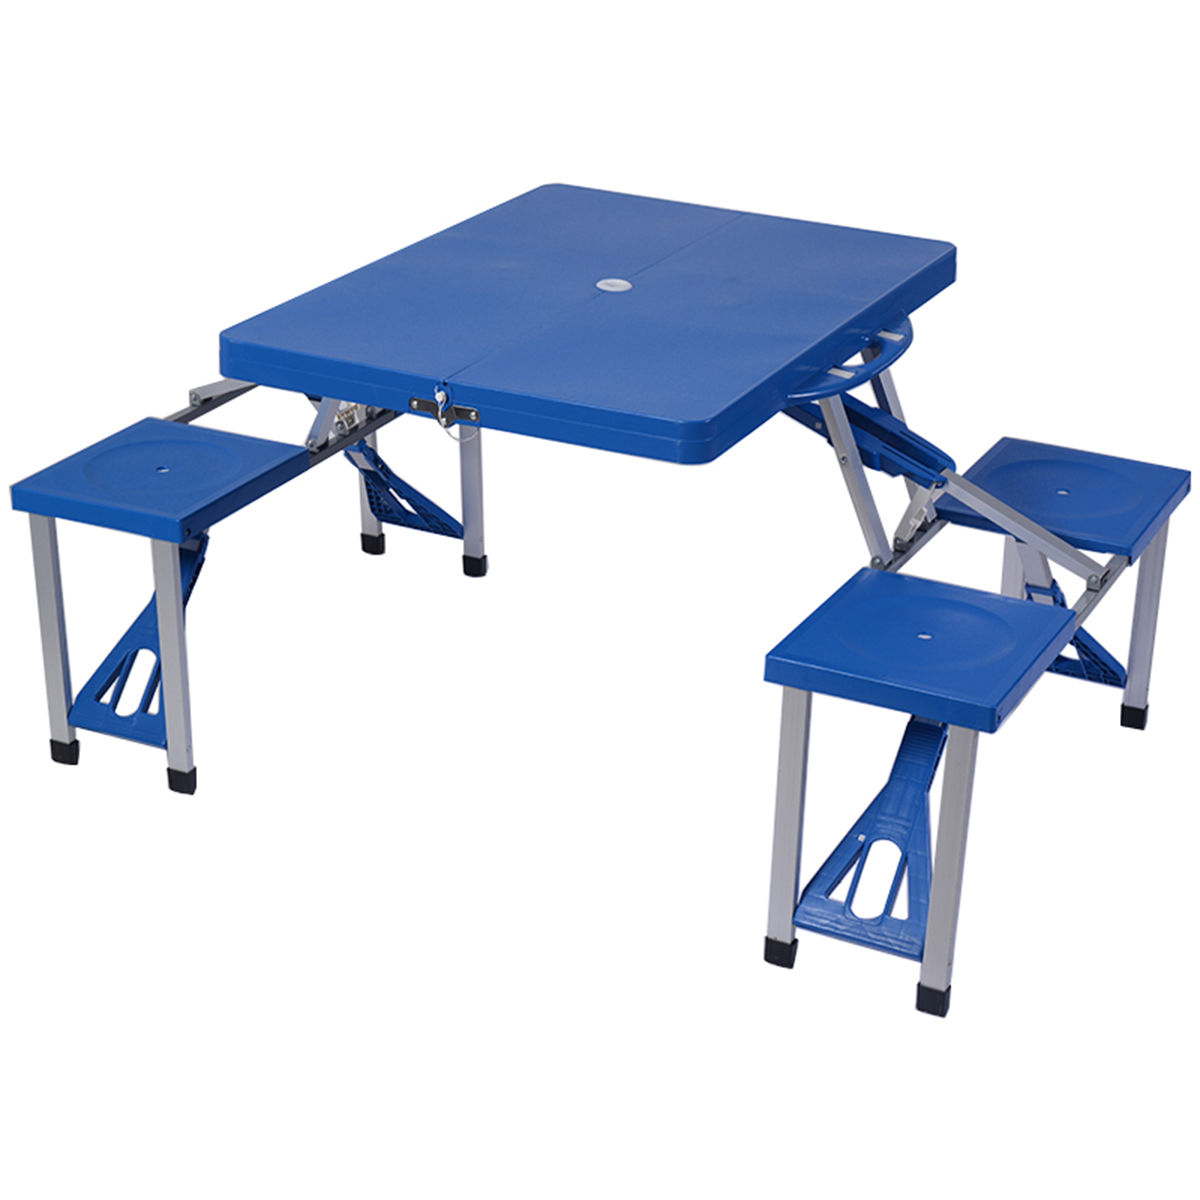 Gymax Outdoor Camping Foldable Picnic Table w  Bench 4 Seat by Gymax